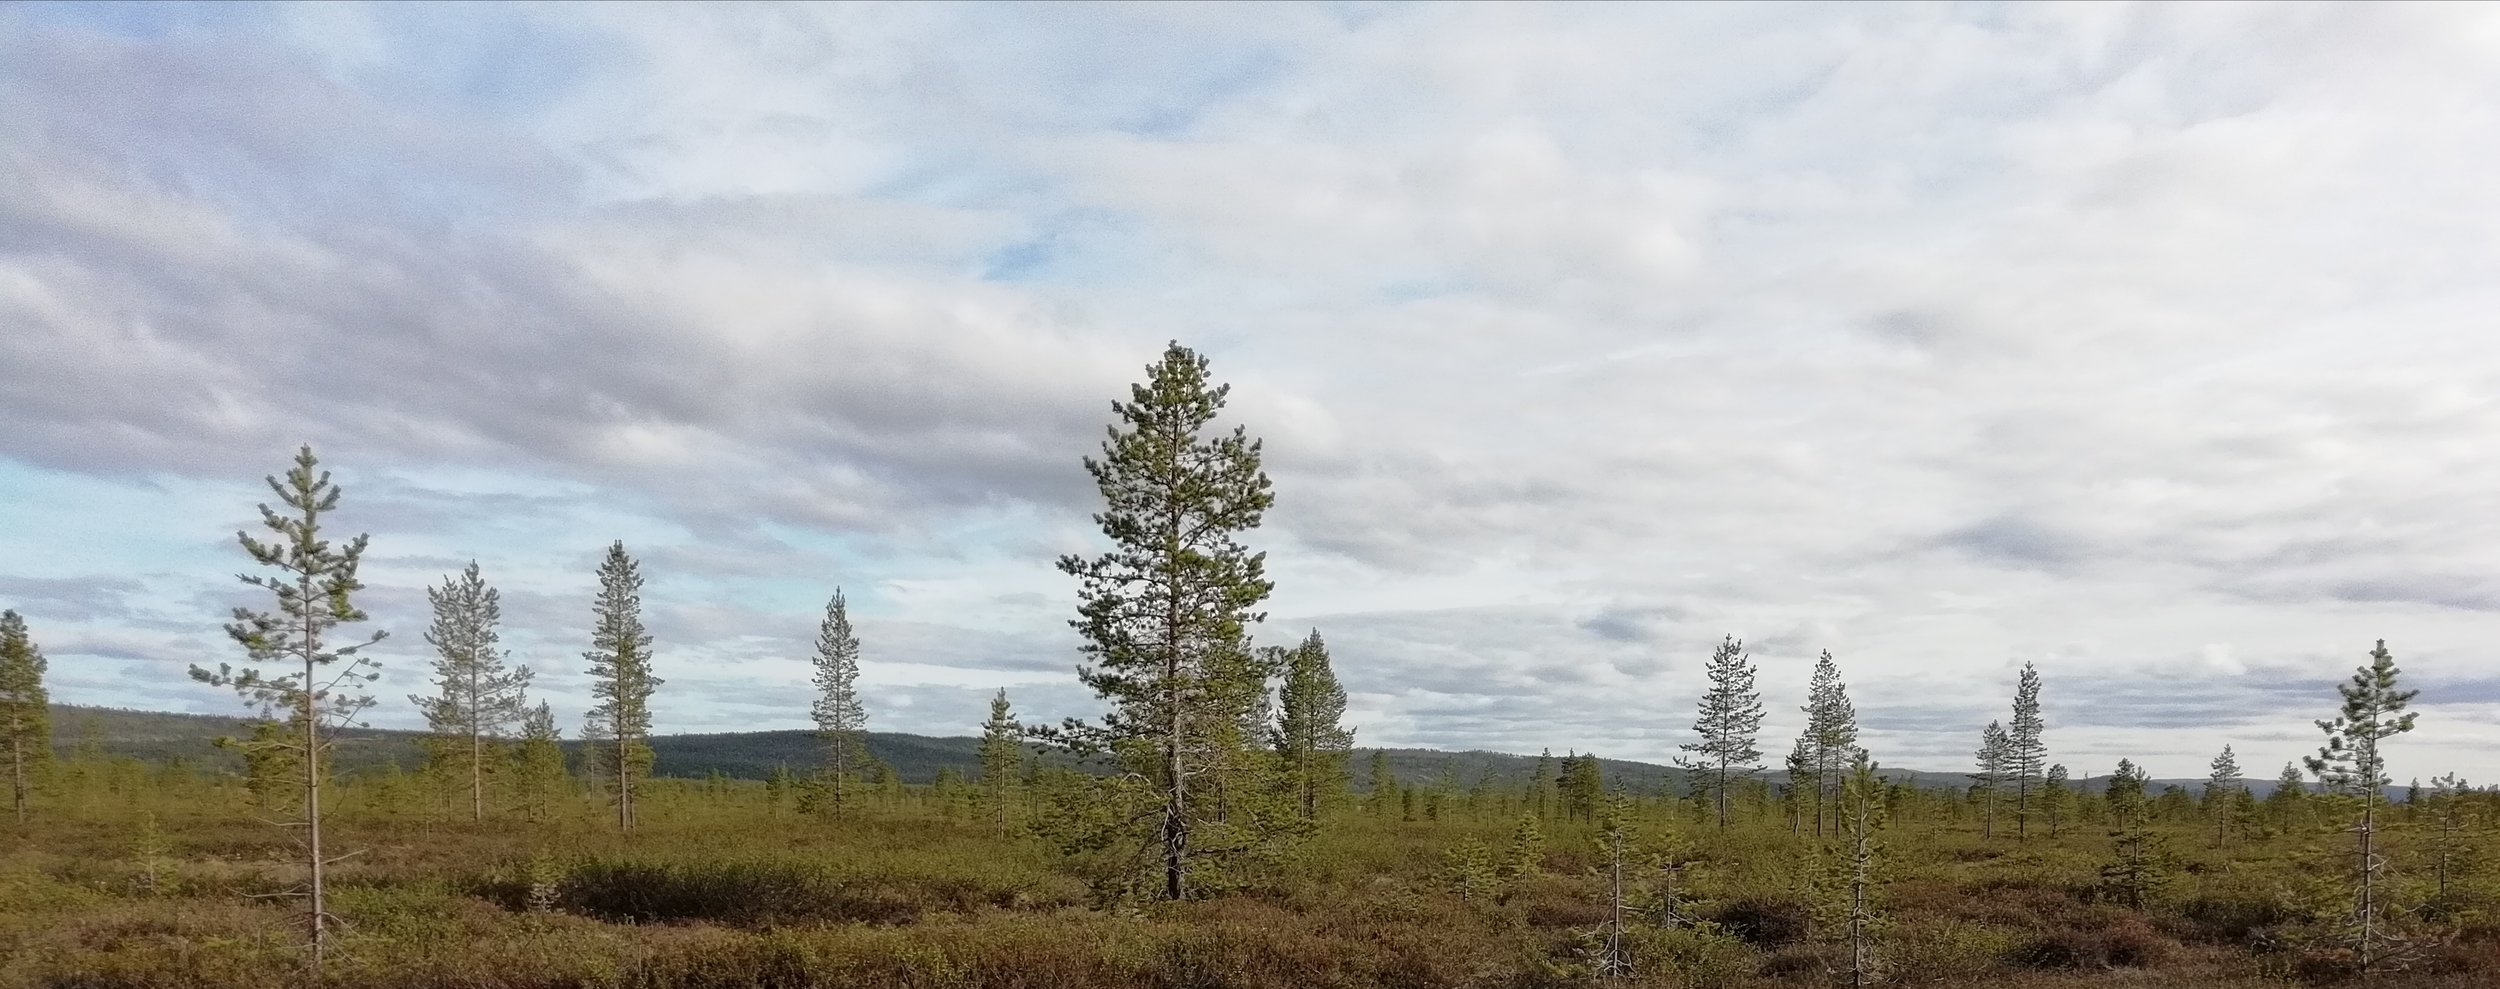 Pasvik Nature Reserve - Sprawling wilderness